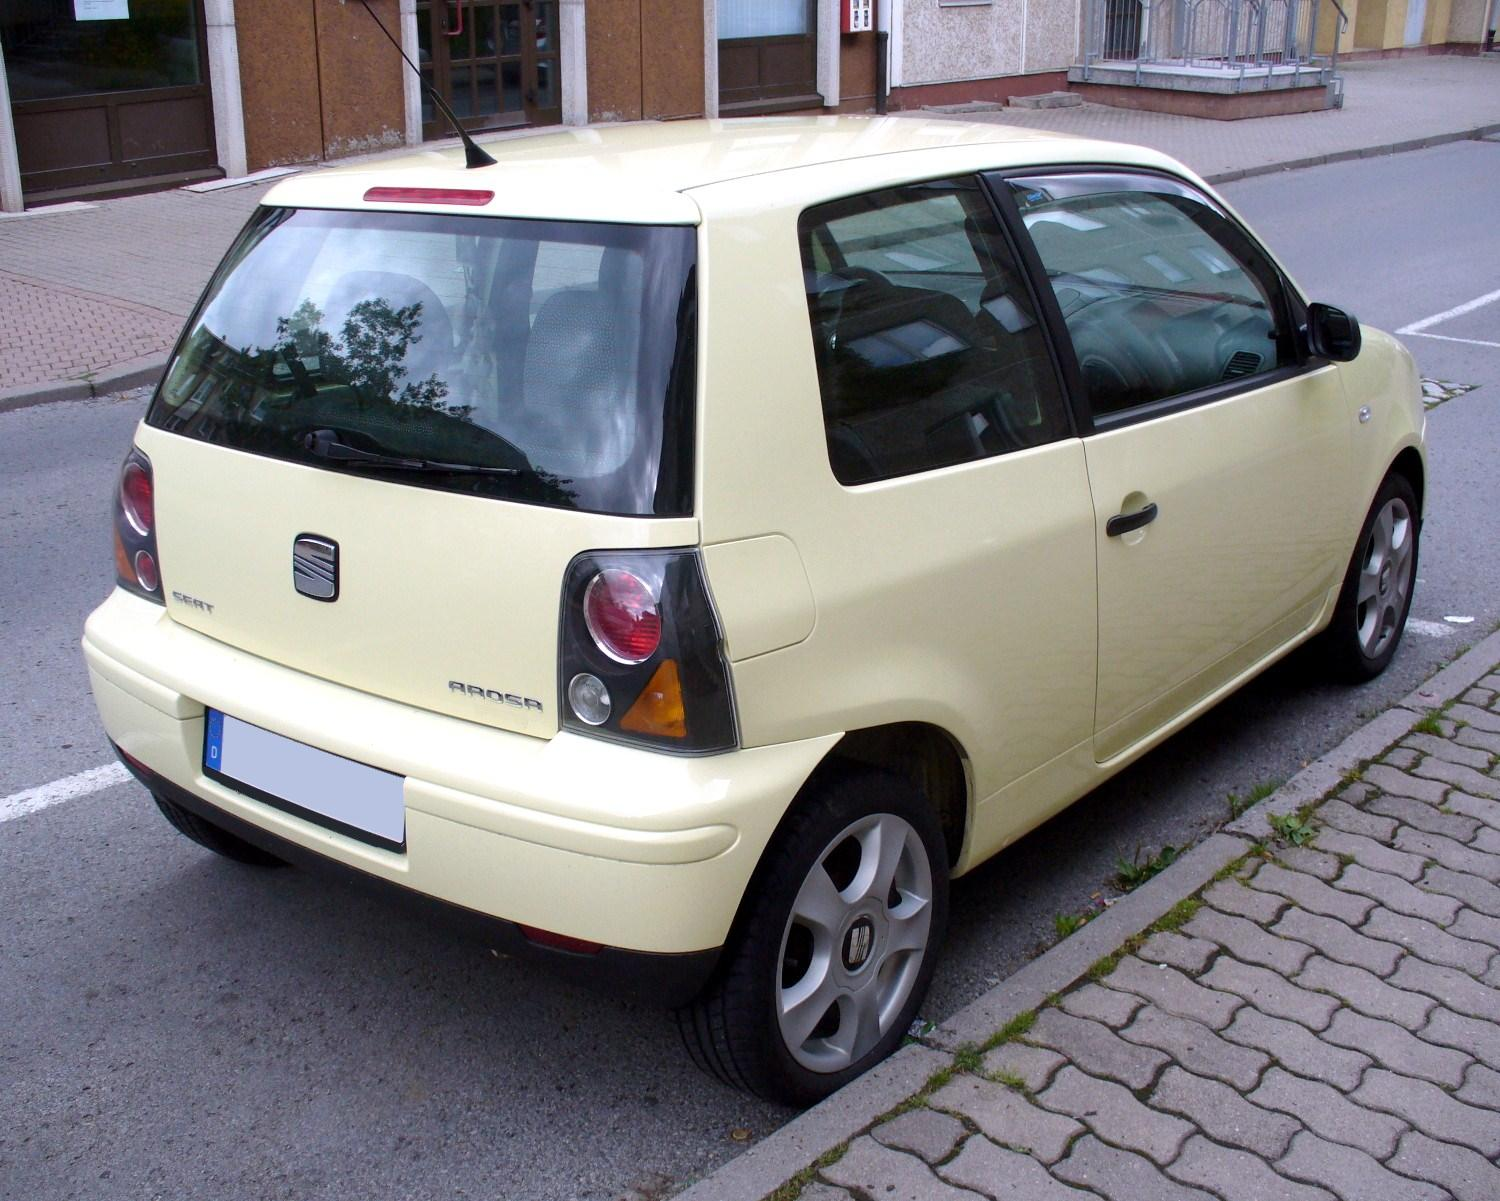 file seat arosa facelift champagnergelb heck jpg wikimedia commons. Black Bedroom Furniture Sets. Home Design Ideas